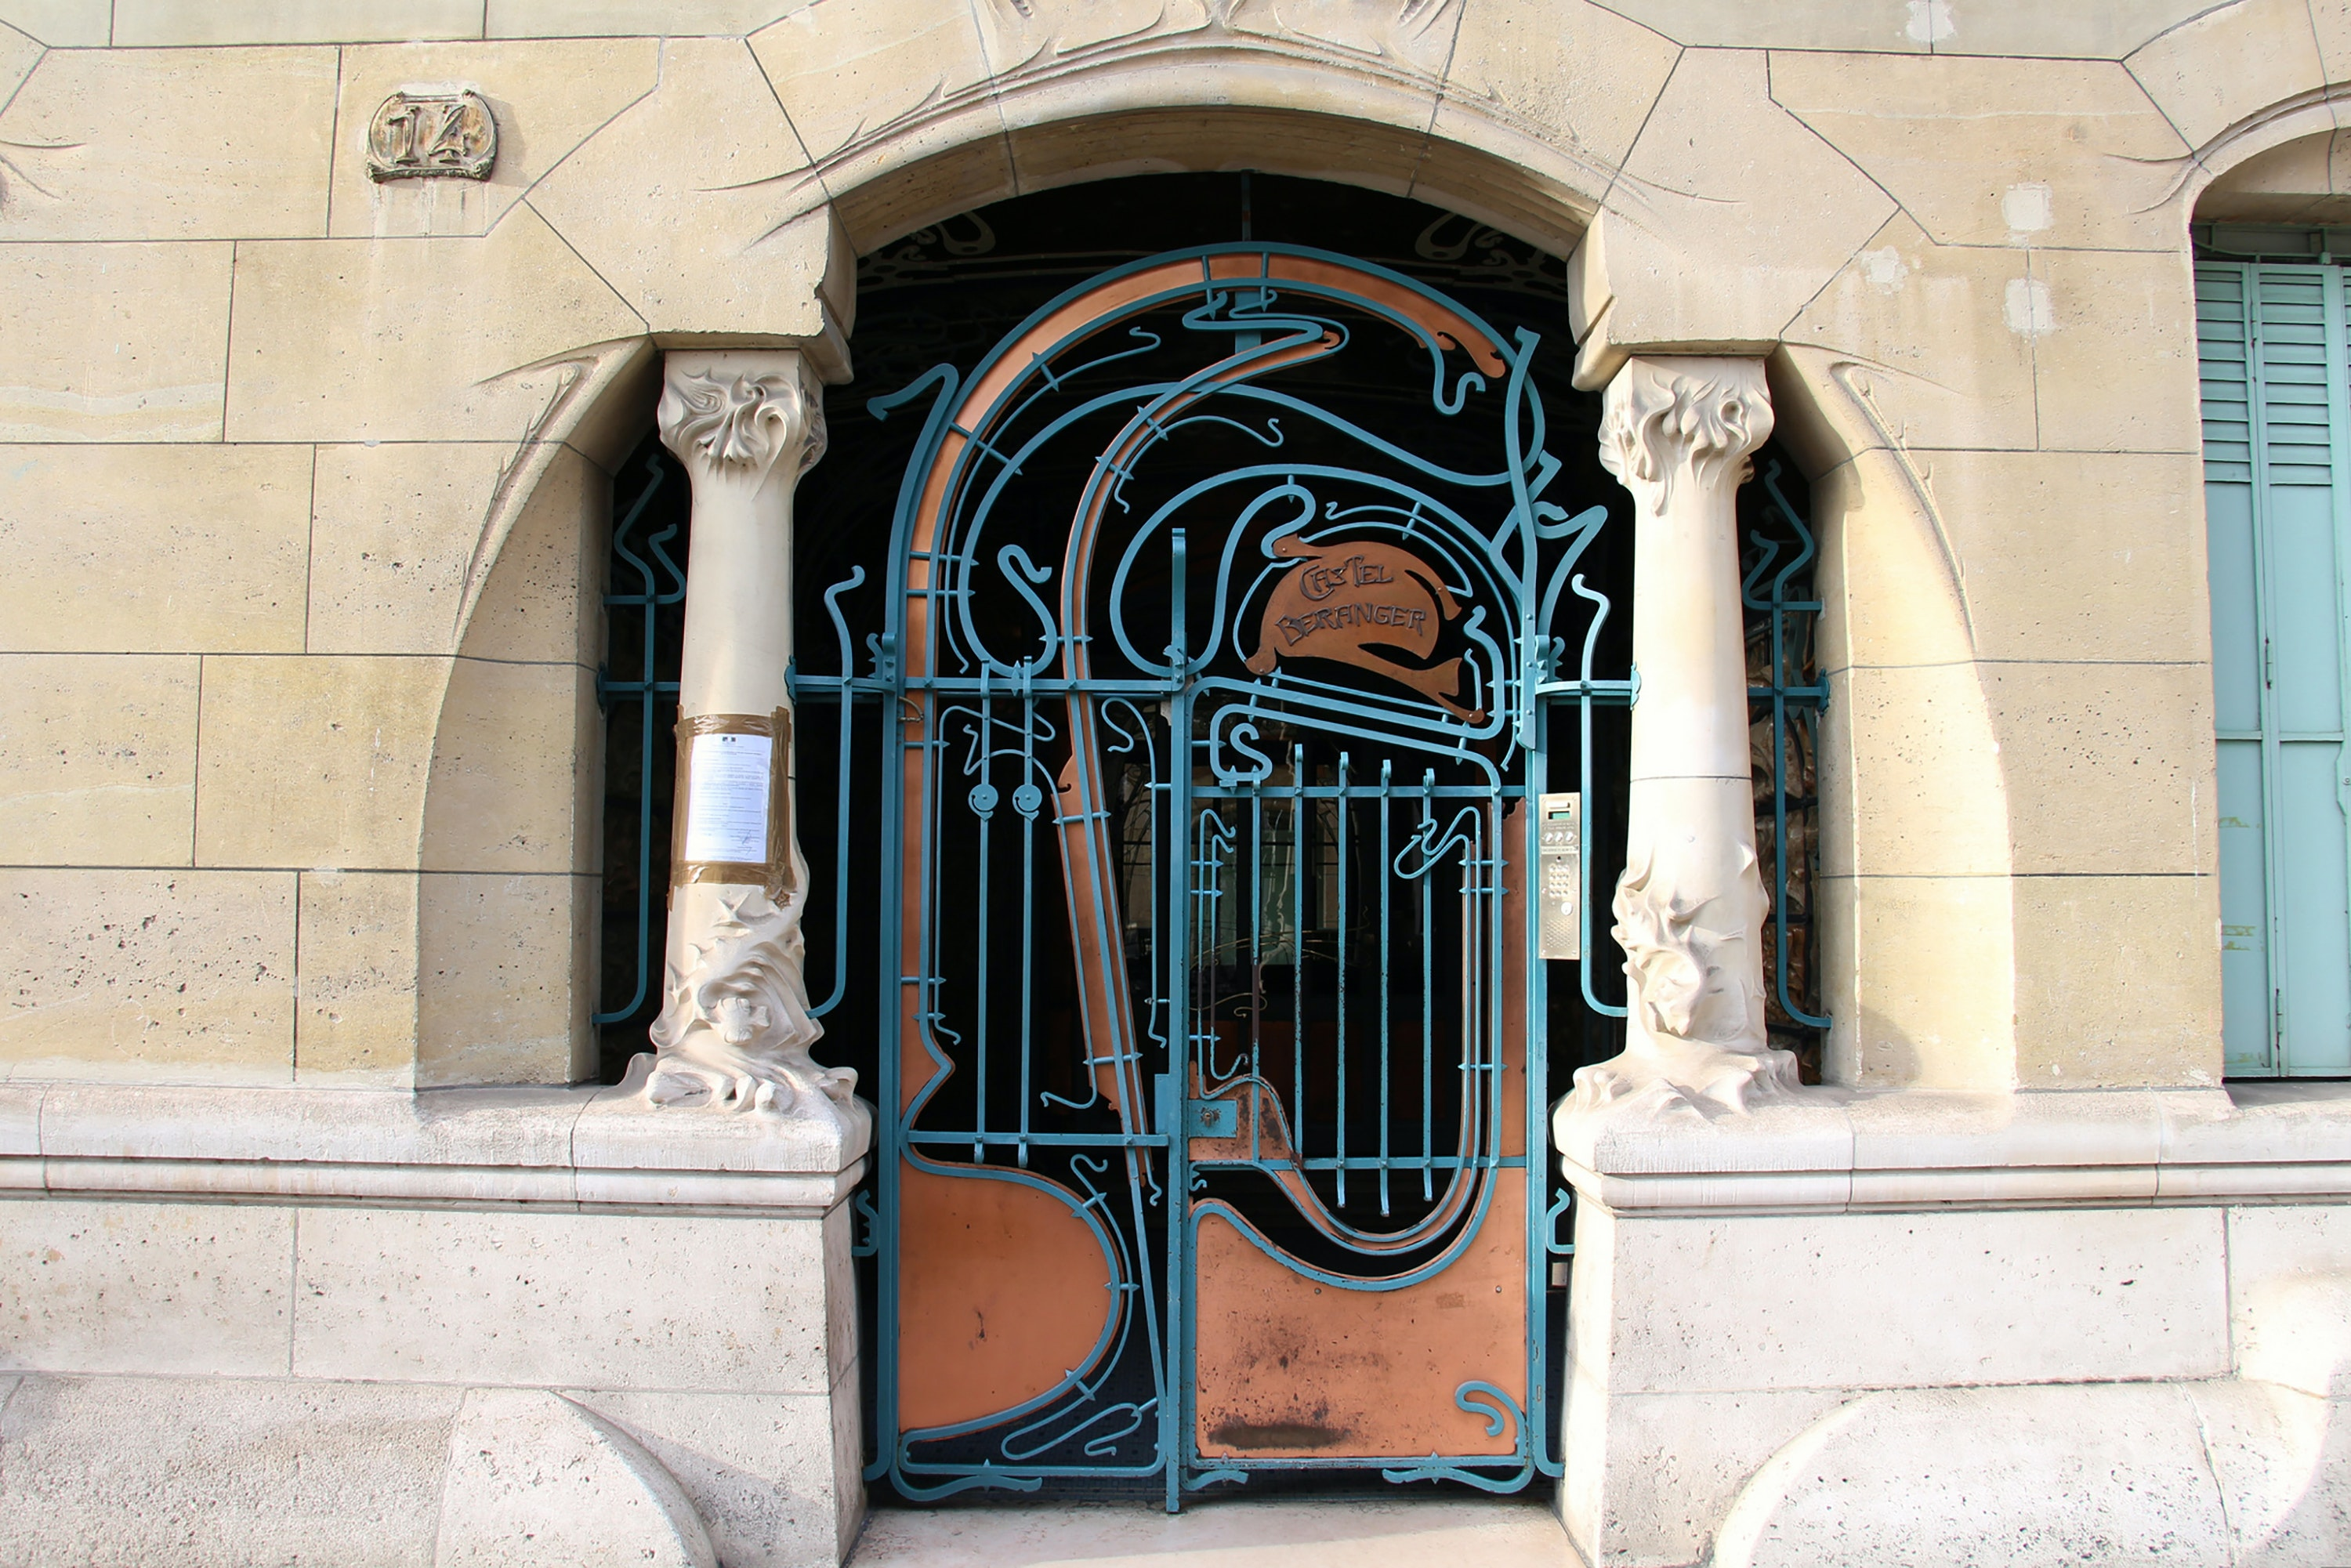 The 16th district in Paris is replete with art nouveau architecture, including the Hector Guimard–designed Castel Béranger.